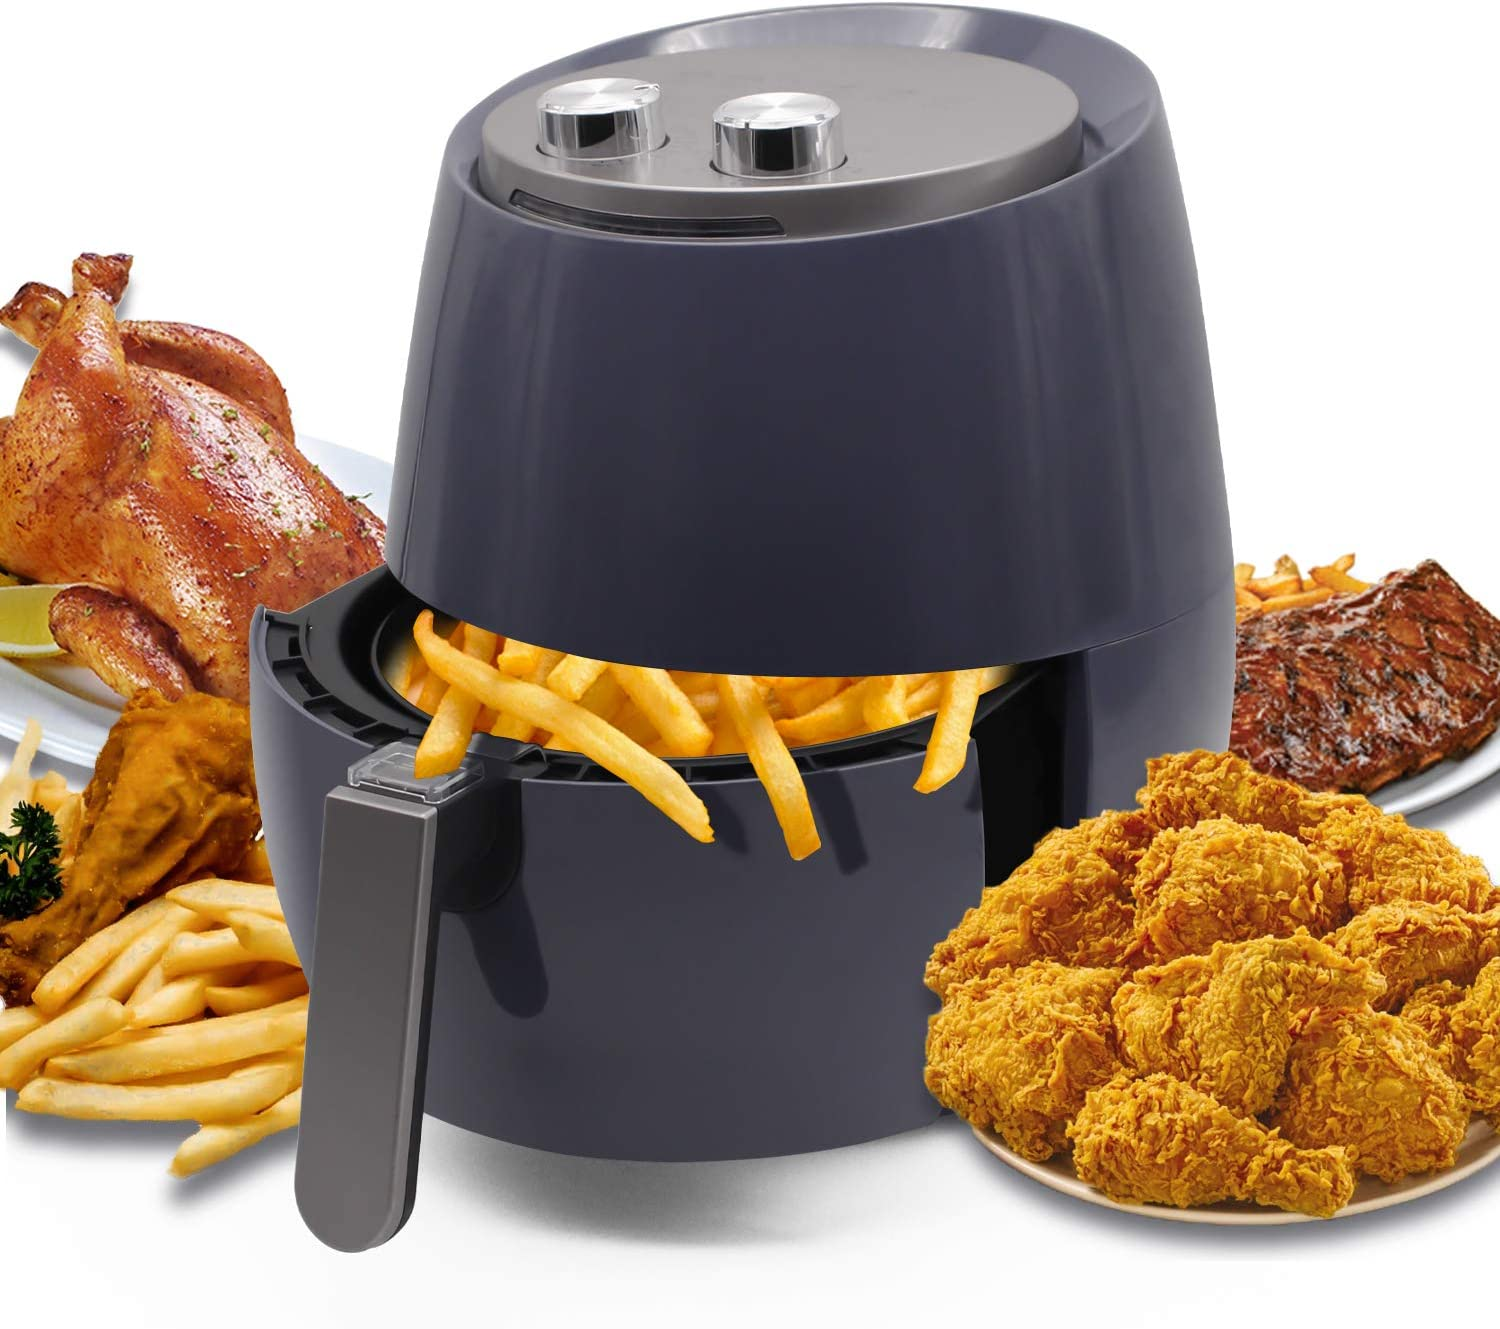 Kazila Chef Air Fryer Large Capacity 3.7 Quart for Healthy Oil Free Cooking Non-Stick Dishwasher Safe Basket,Blue